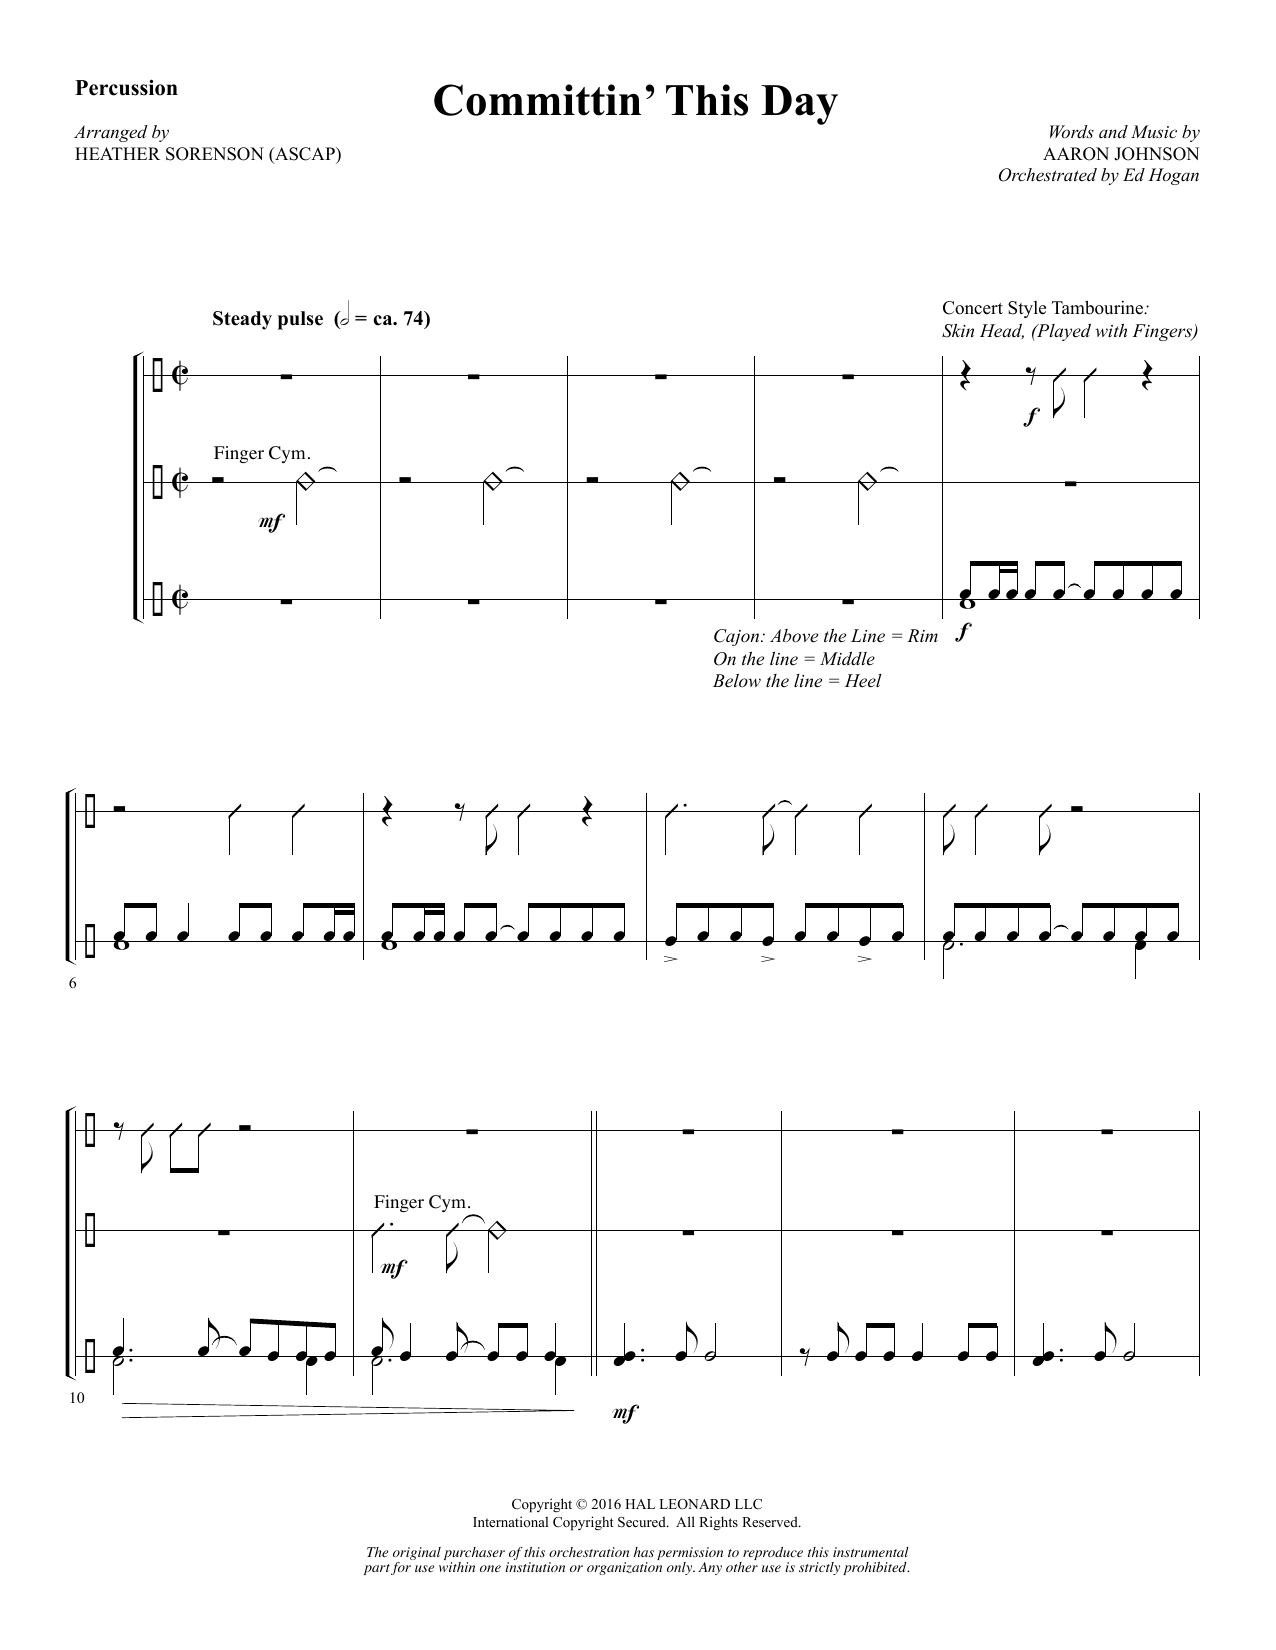 Heather Sorenson Committin' This Day - Percussion sheet music notes and chords. Download Printable PDF.